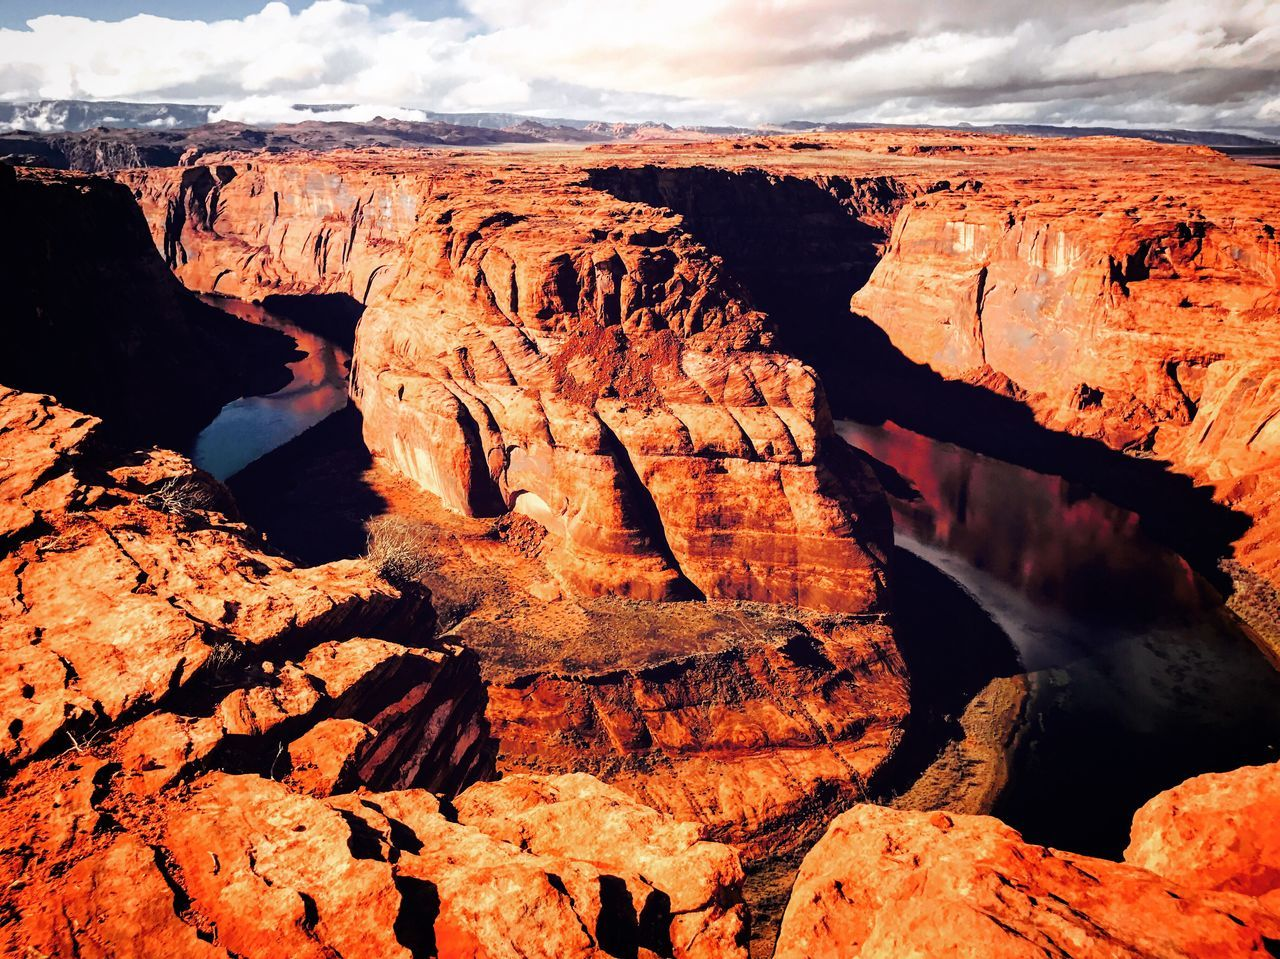 Nature Tranquility Beauty In Nature Rock - Object Rock Formation Geology Physical Geography No People Tranquil Scene Day Scenics Outdoors Sky Horseshoe Bend Utah Arizona Vacations Travel Destinations Tranquility Travel Outdoor Photography Hiking Adventure Adrenaline Junkie Desert